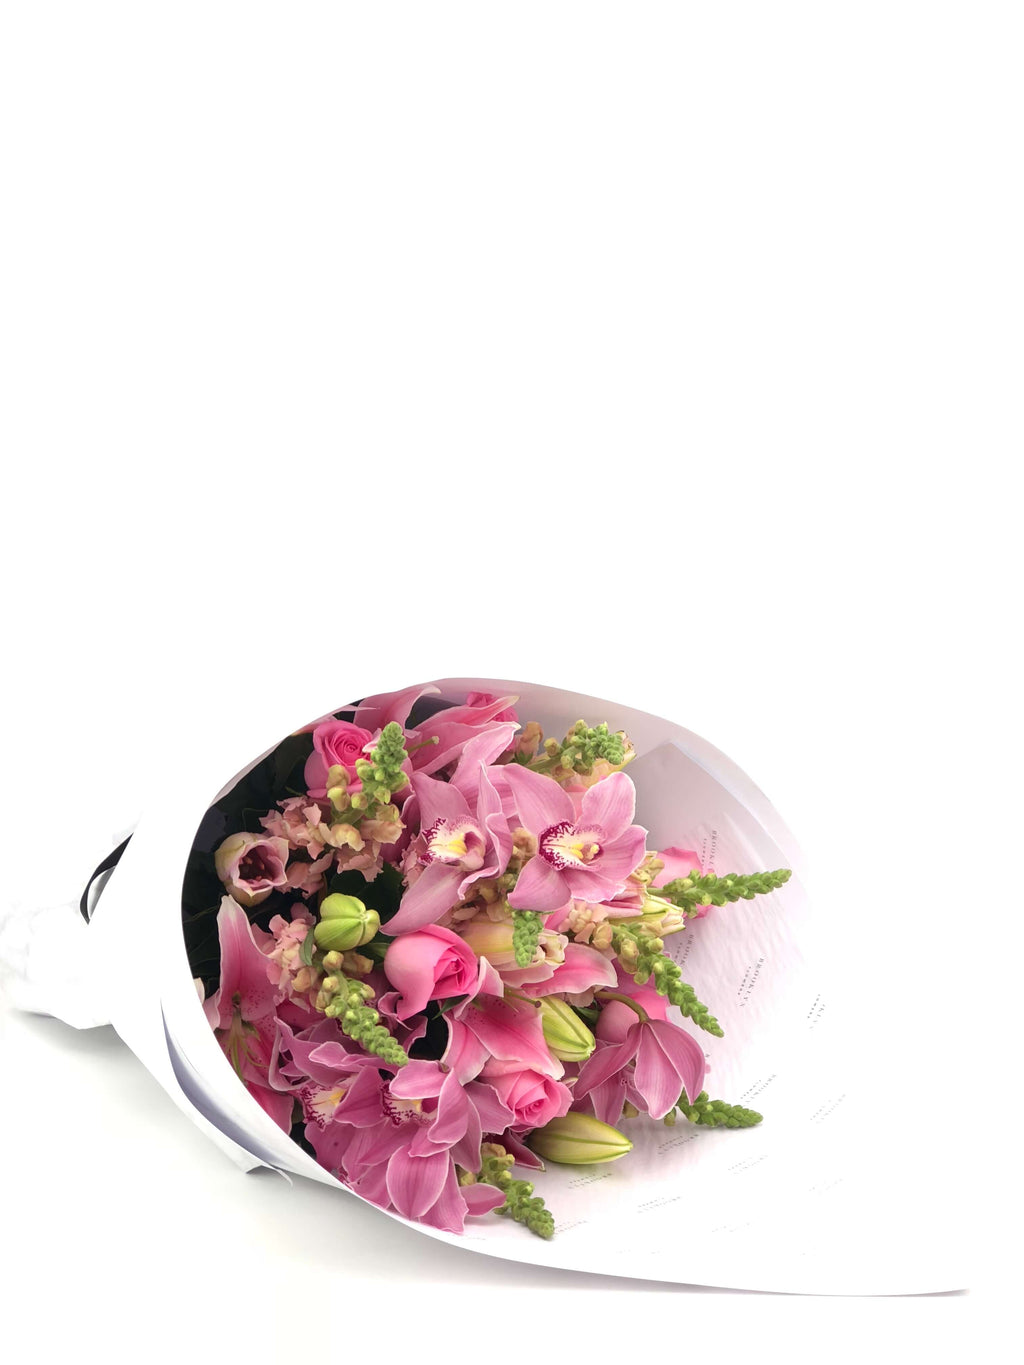 Bouquet, Pretty, Pink Bouquet, Pink Lilies, Lilies, Pink Snapdragons, Snapdragons, Roses, Pink Roses, Pink Cymbidium Orchids, Cymbidium Orchids, foliage